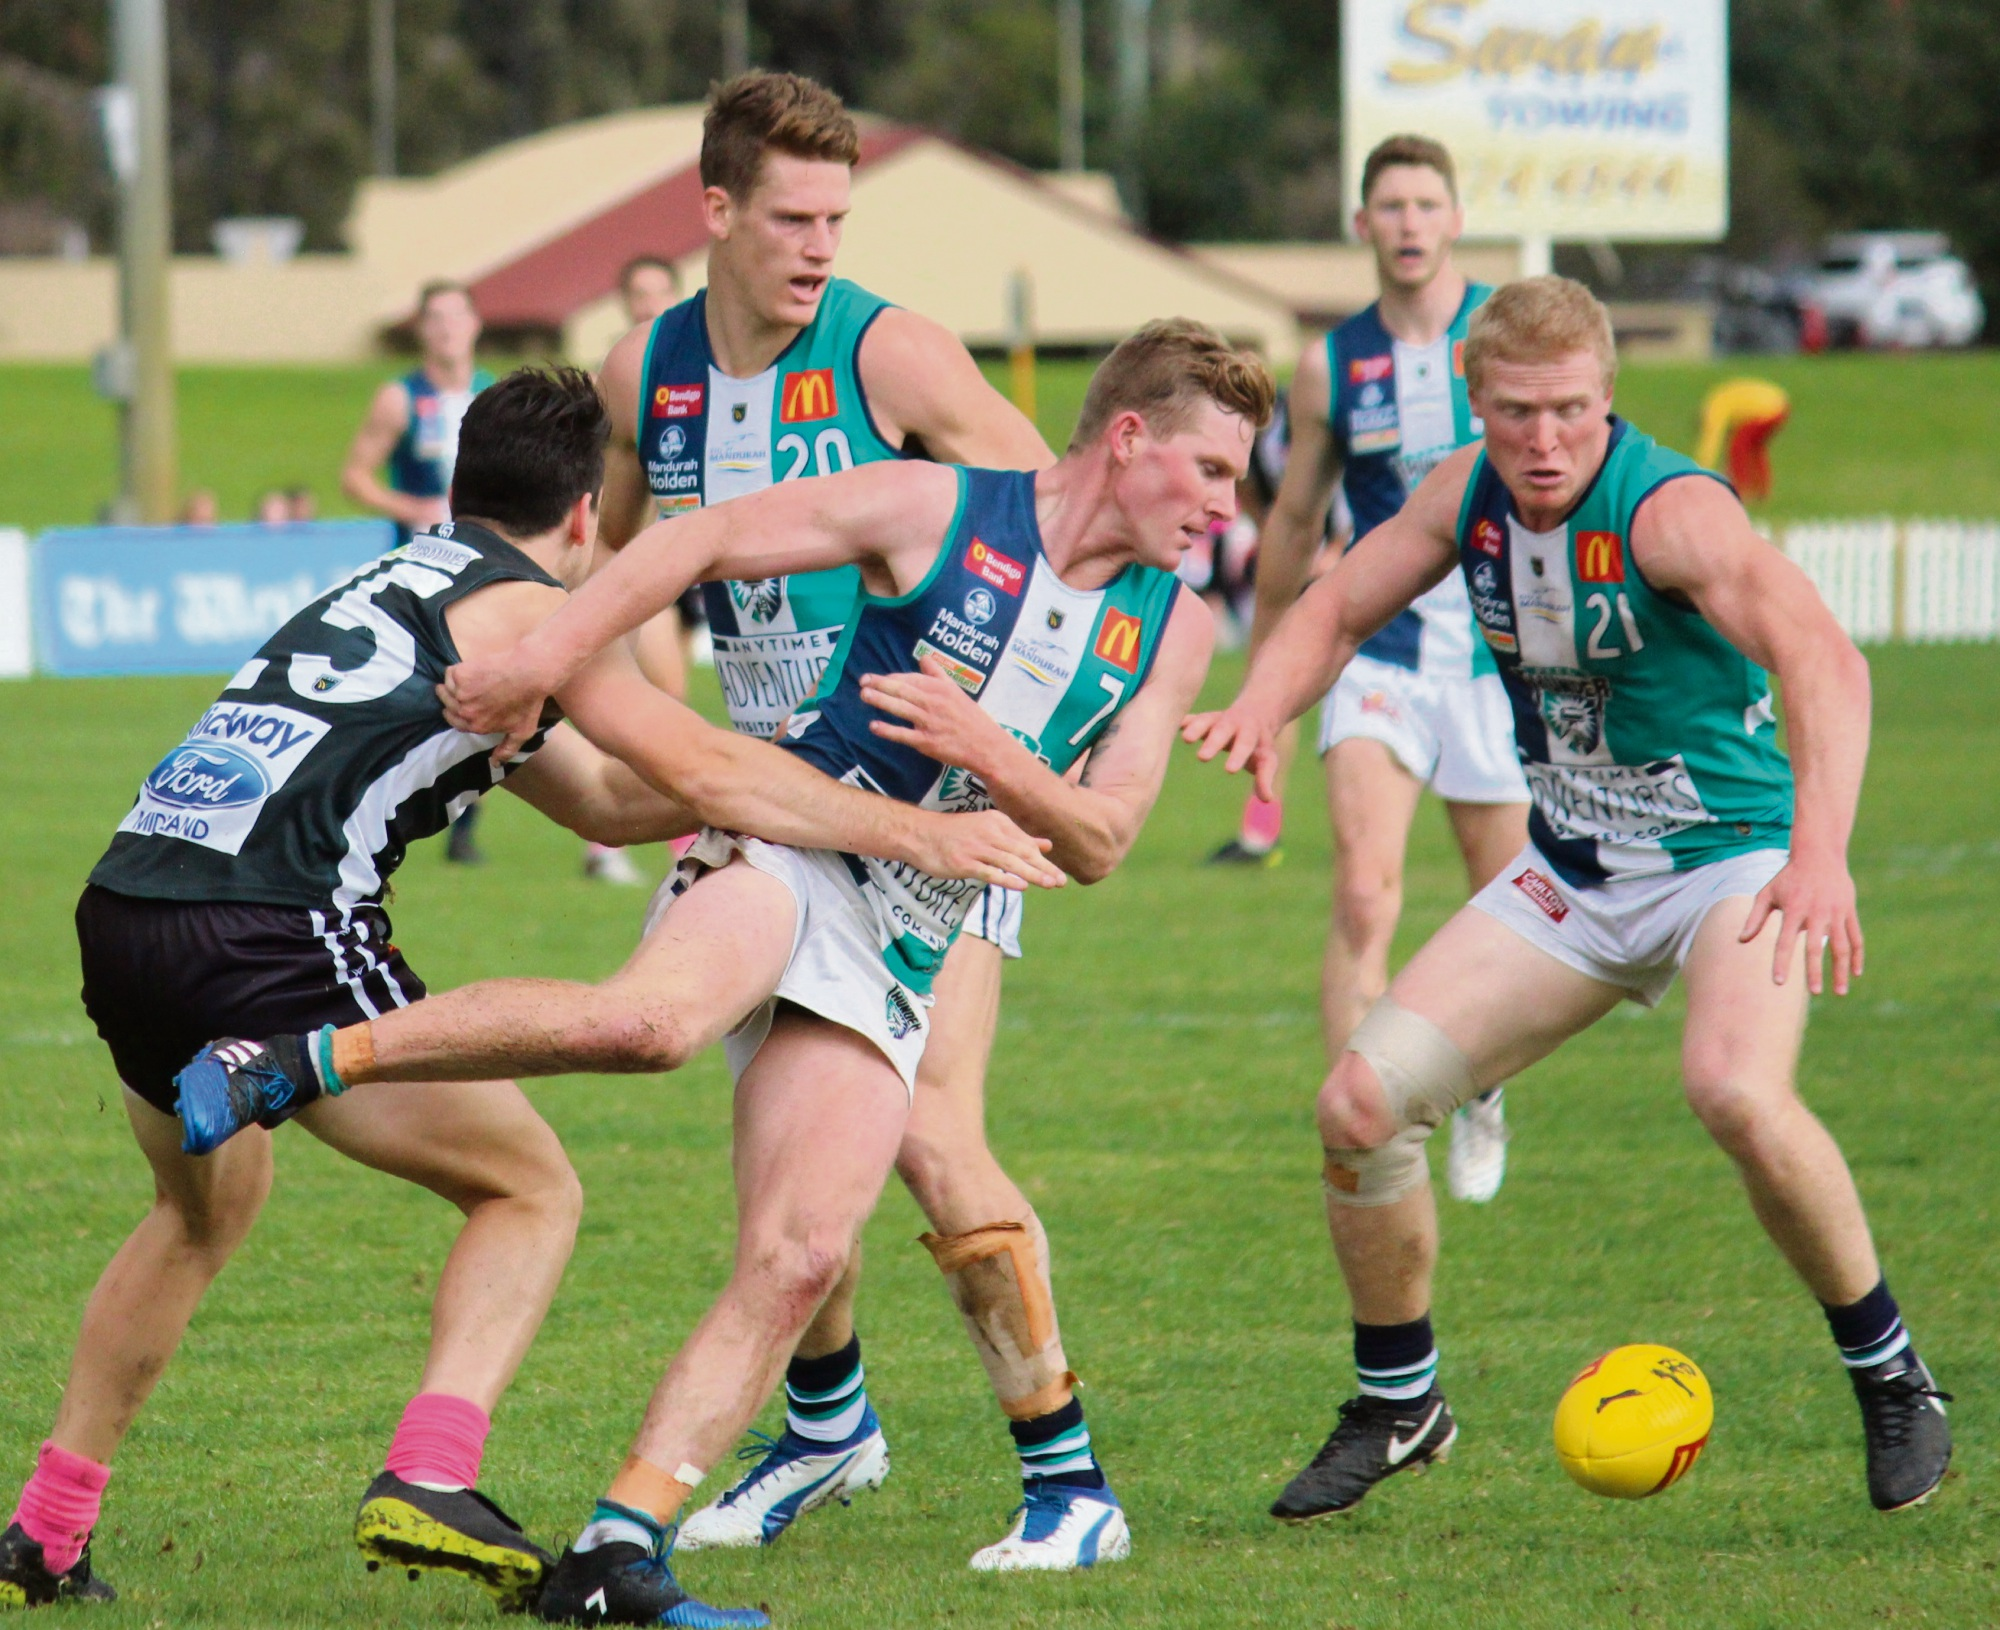 Matthew Taberner, Brayden Lawler and Blair Bell close in on the footy.